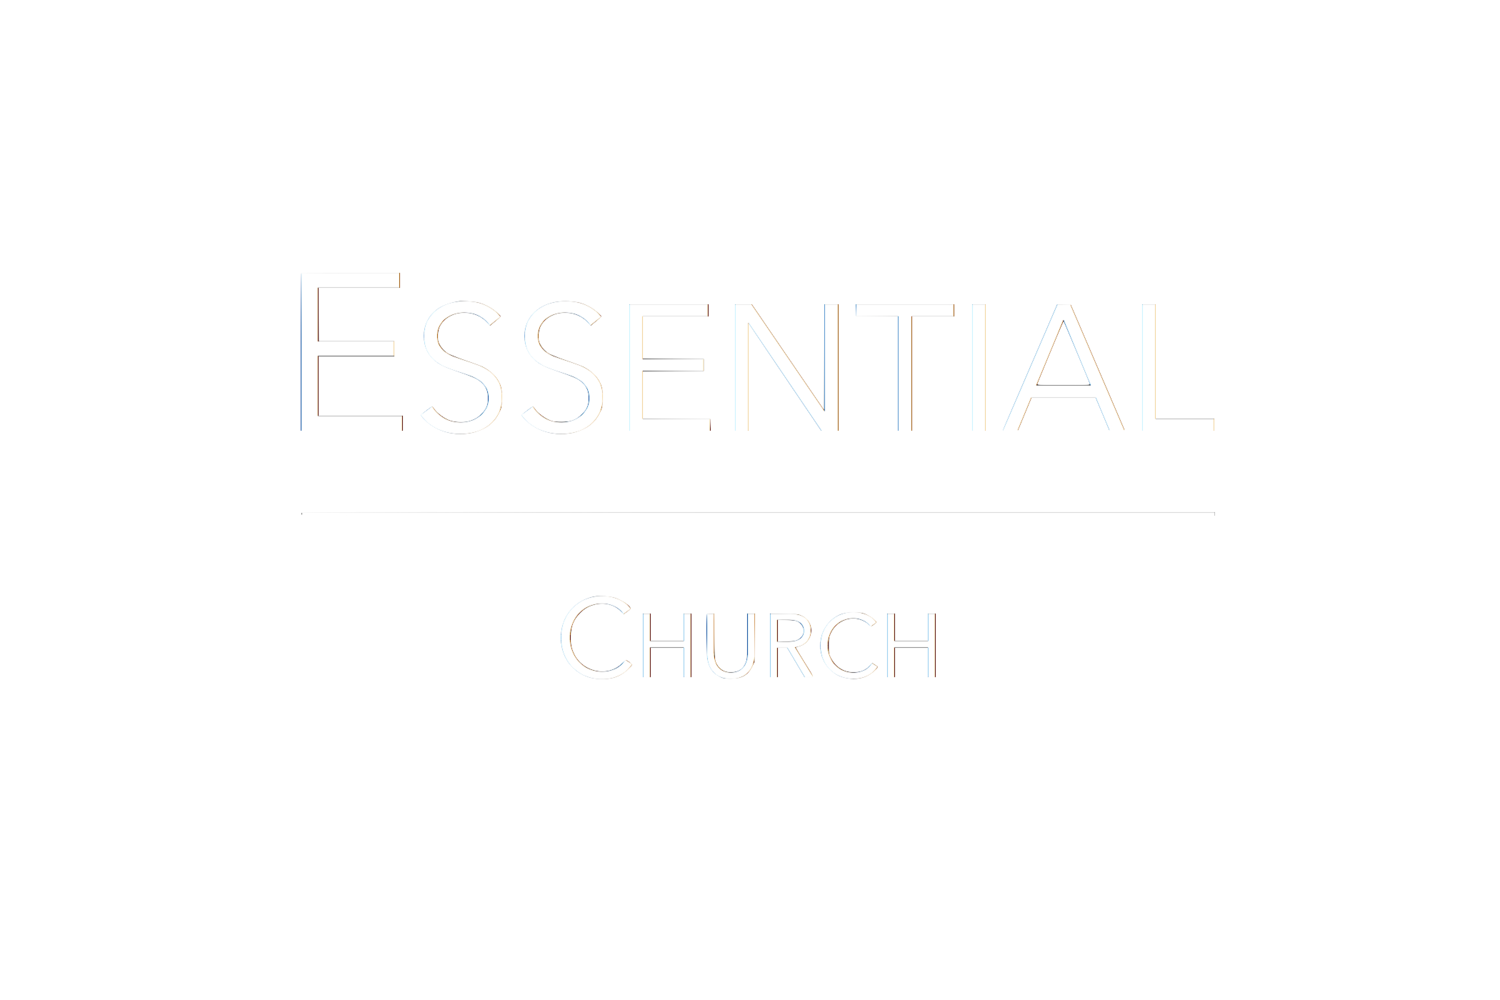 Essential Church